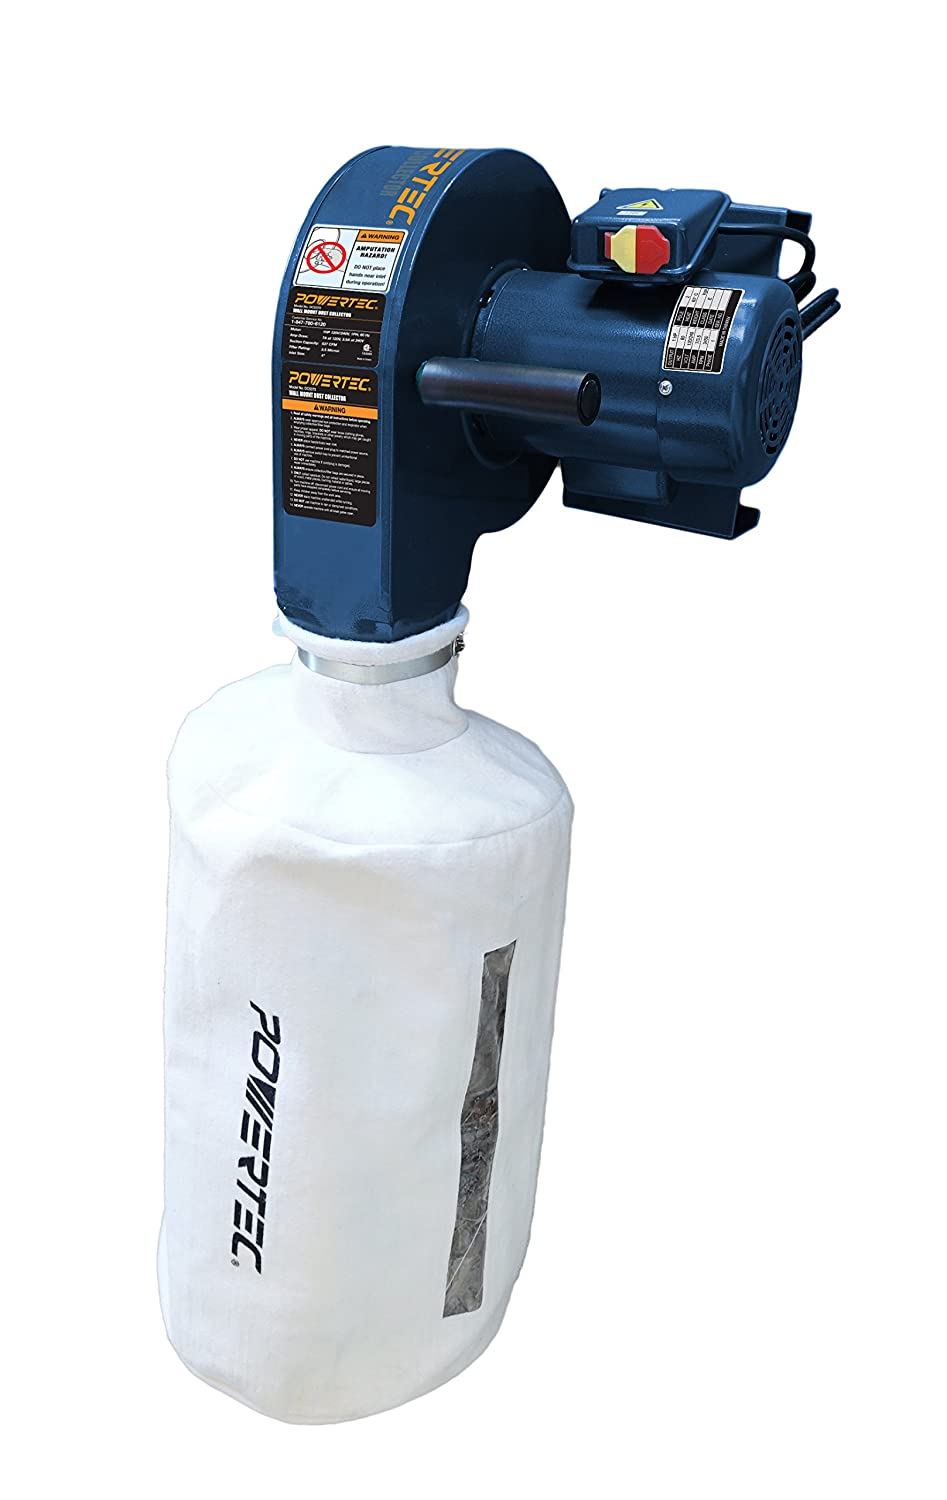 POWERTEC DC5370 Wall Dust Collector with 2.5 Micron Filter Bag